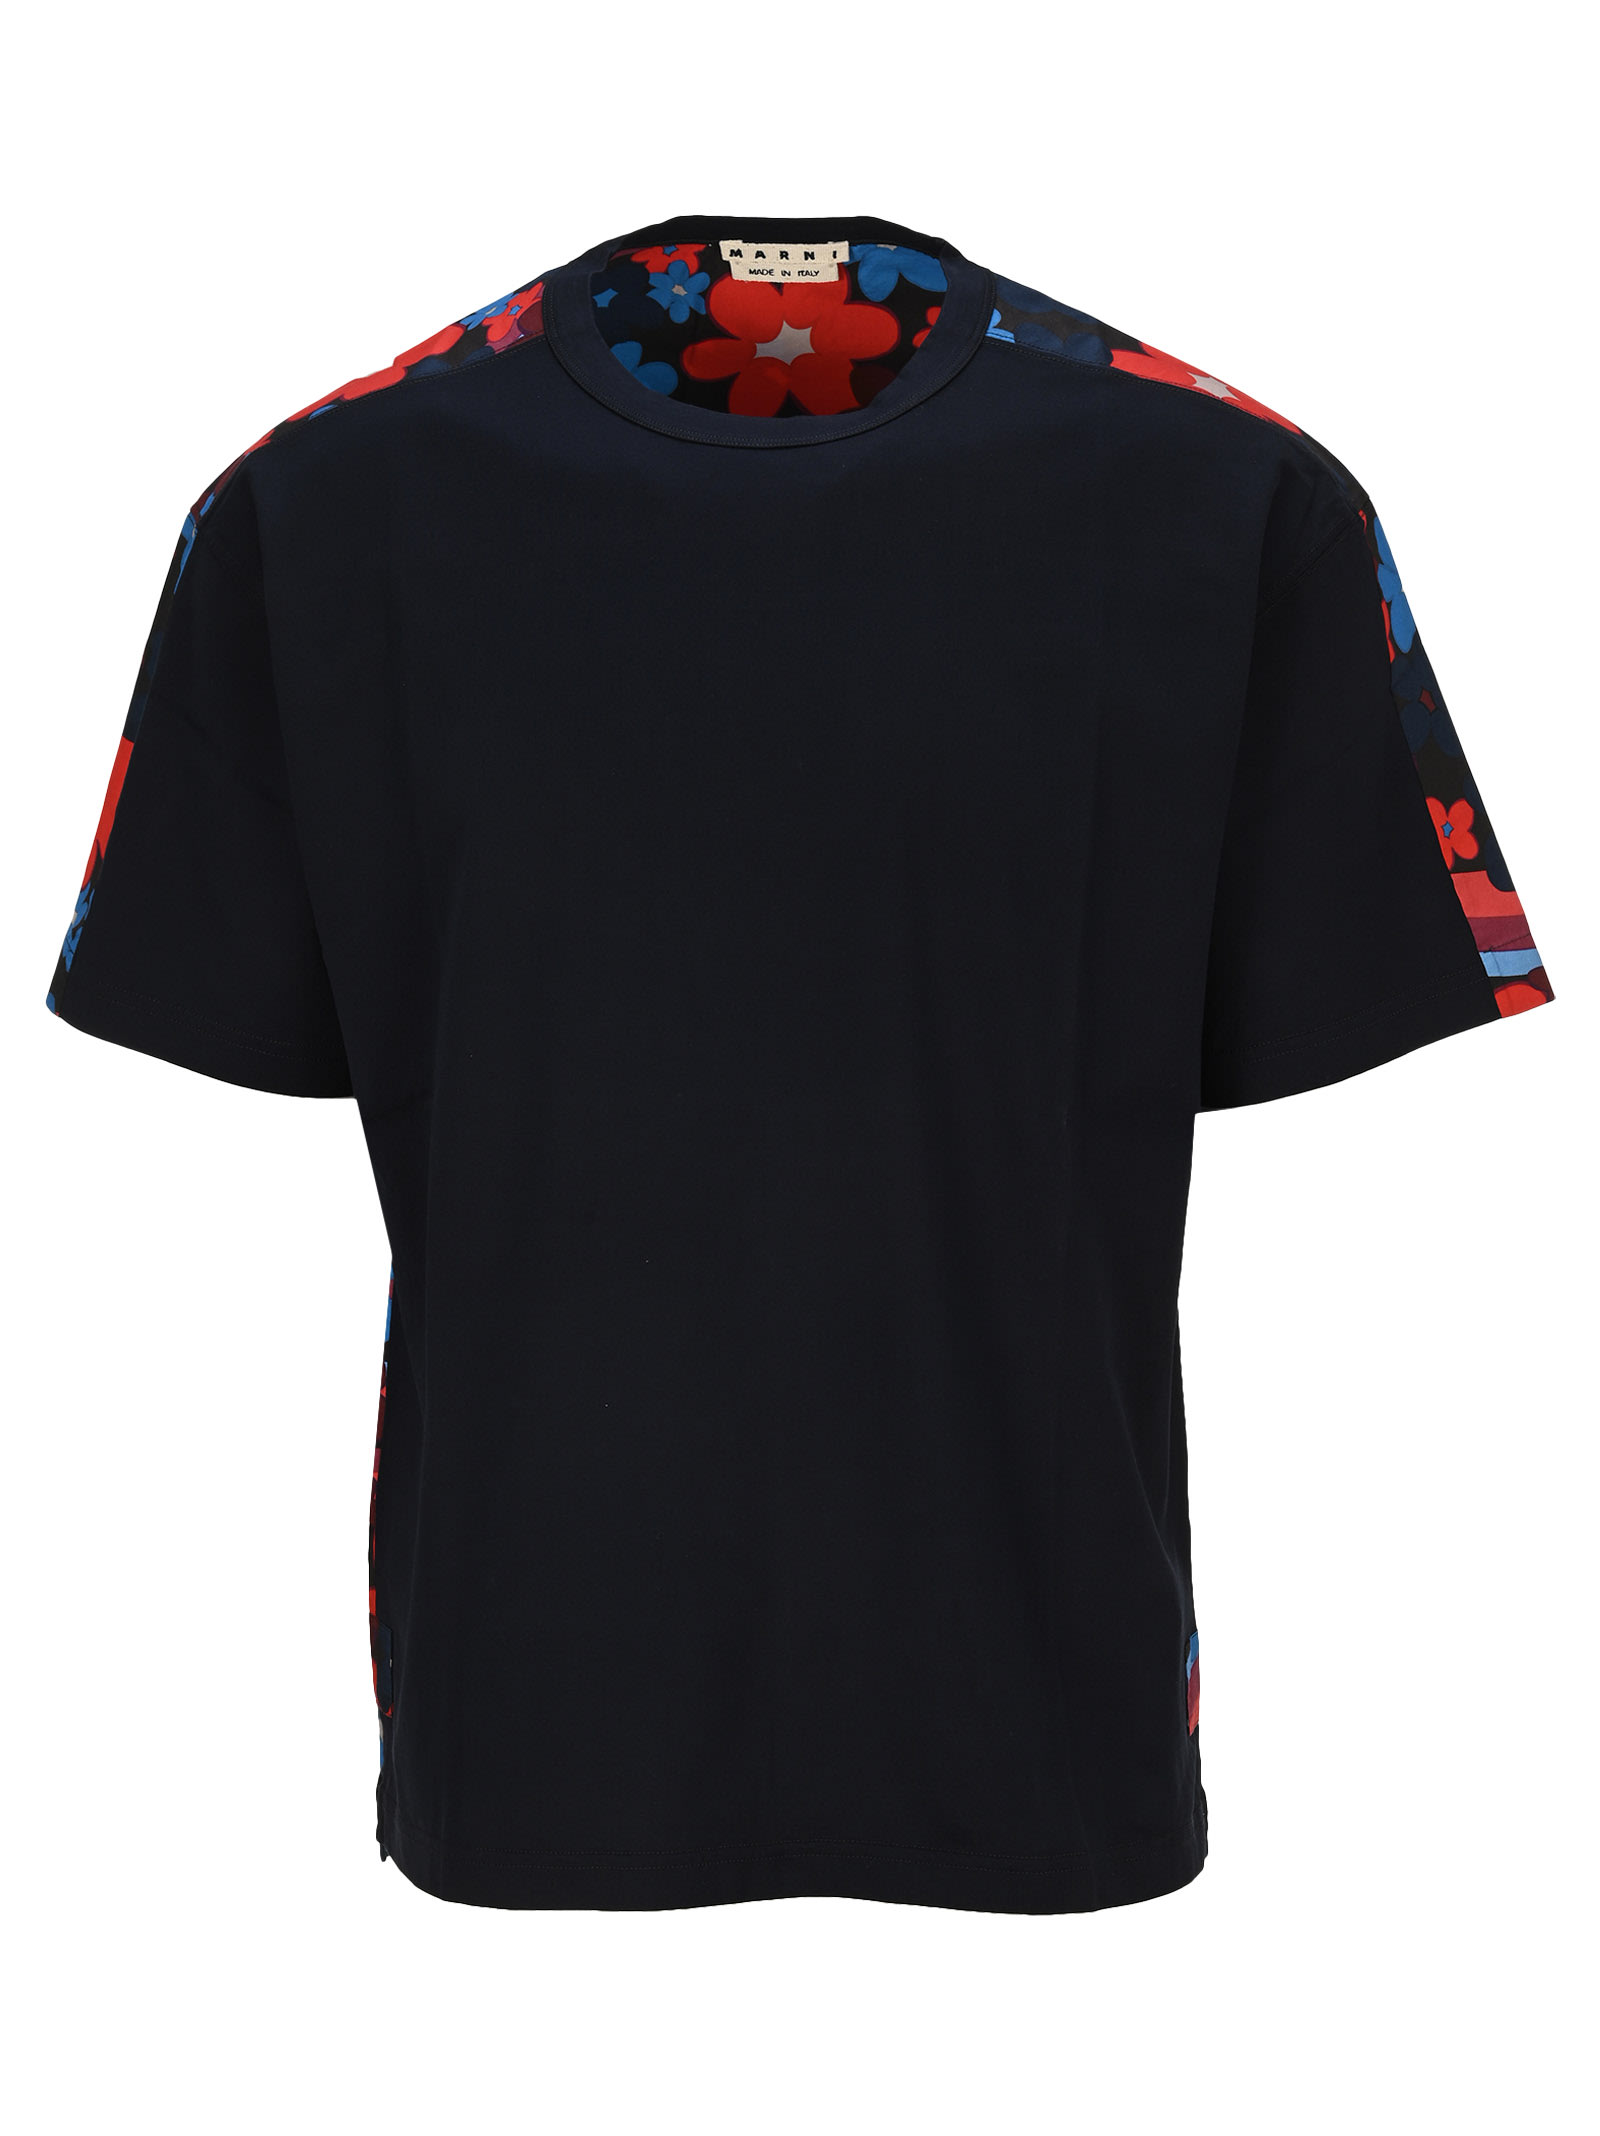 Marni Floral Back T-shirt In Navy Flower